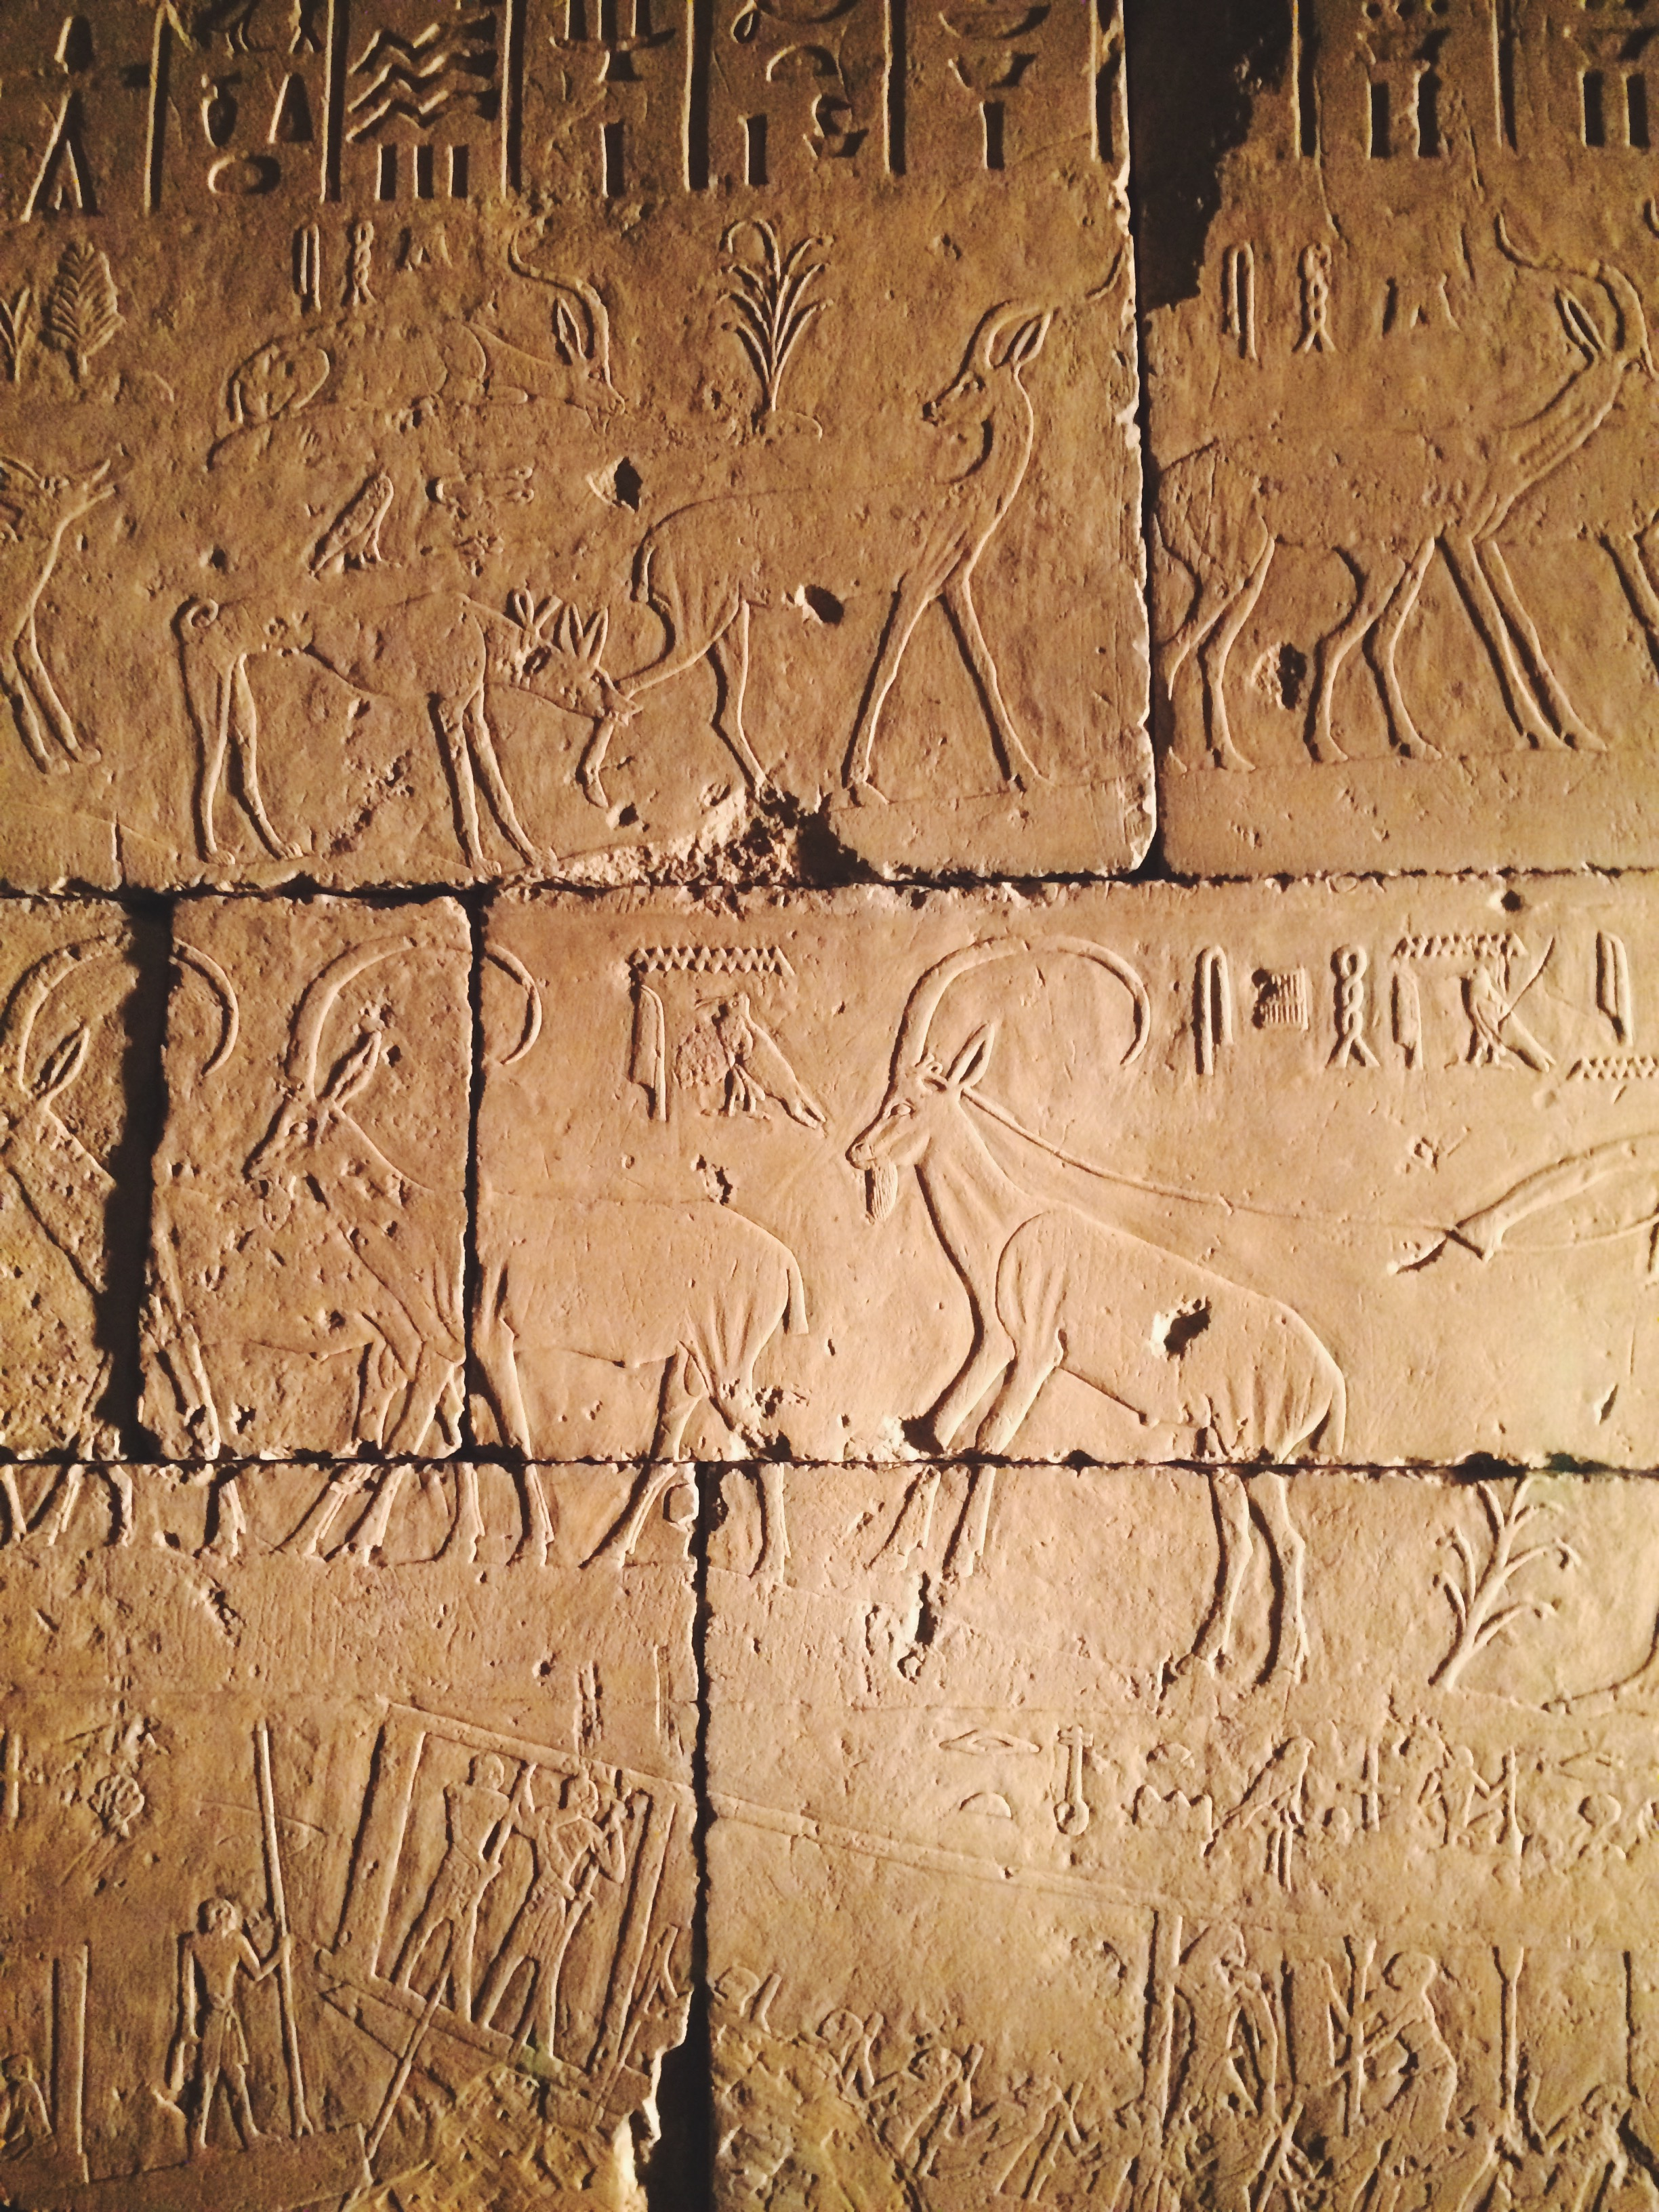 Actual hieroglyphics on stone from the Ancient Egypt exhibit at the Met.